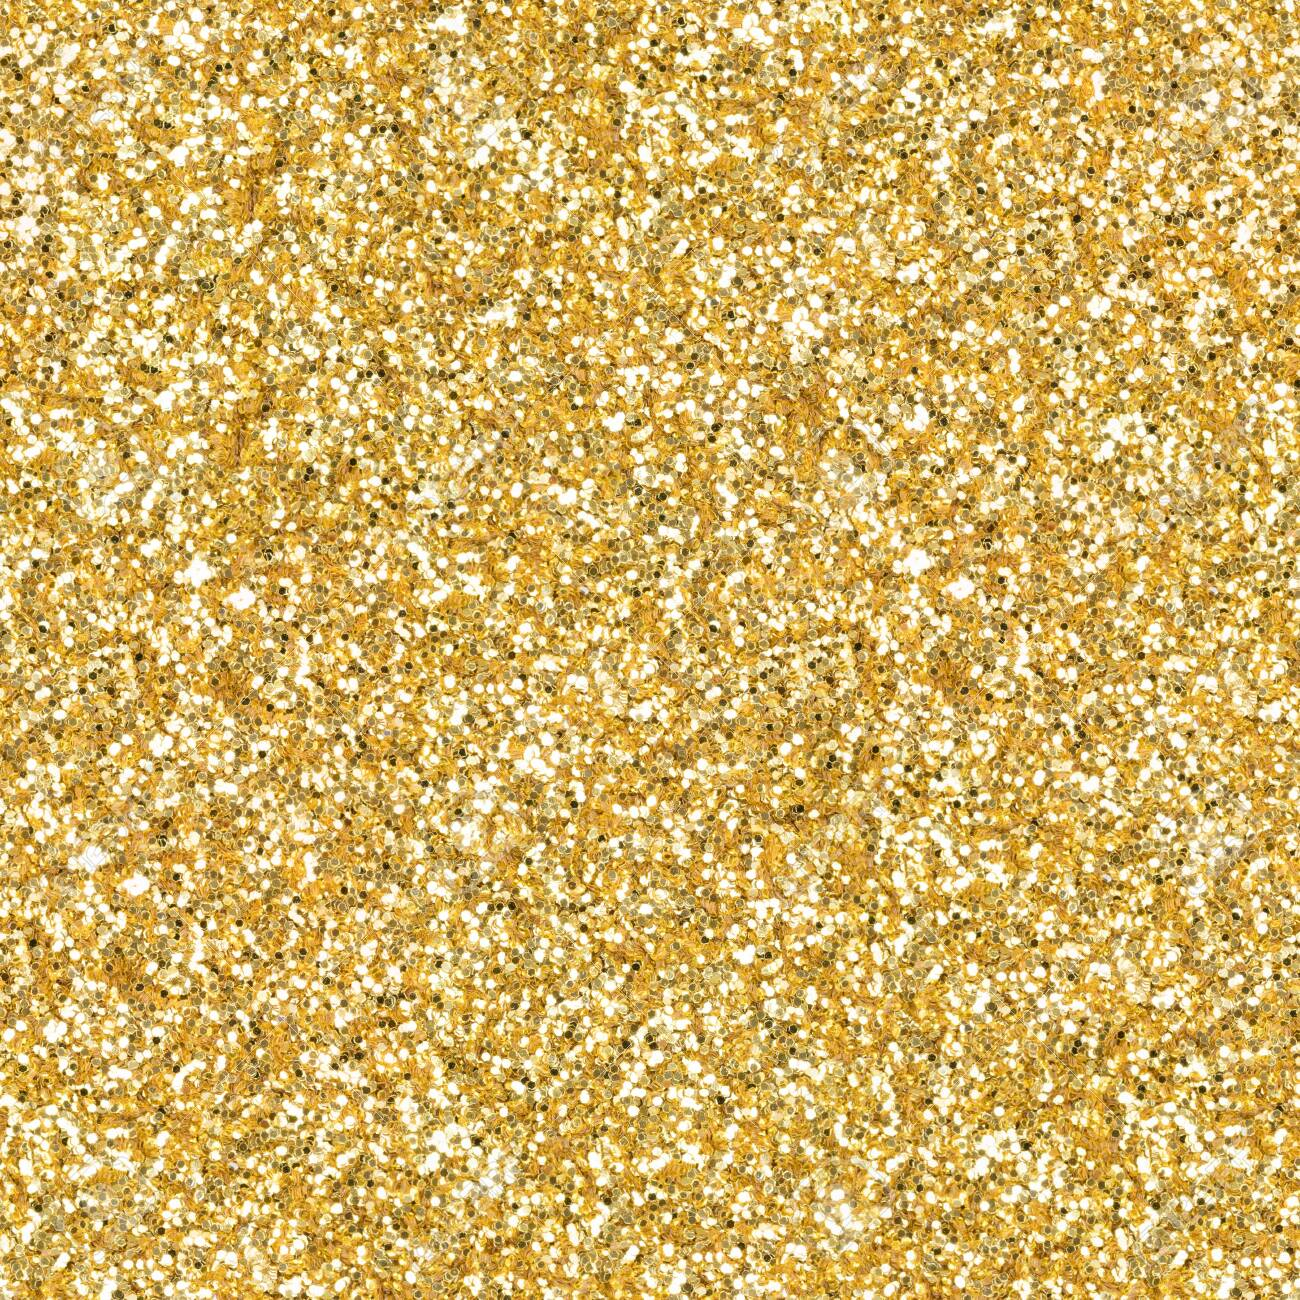 Golden glitter, sparkle confetti texture. Christmas abstract background. Ideal seamless pattern. - 156618077